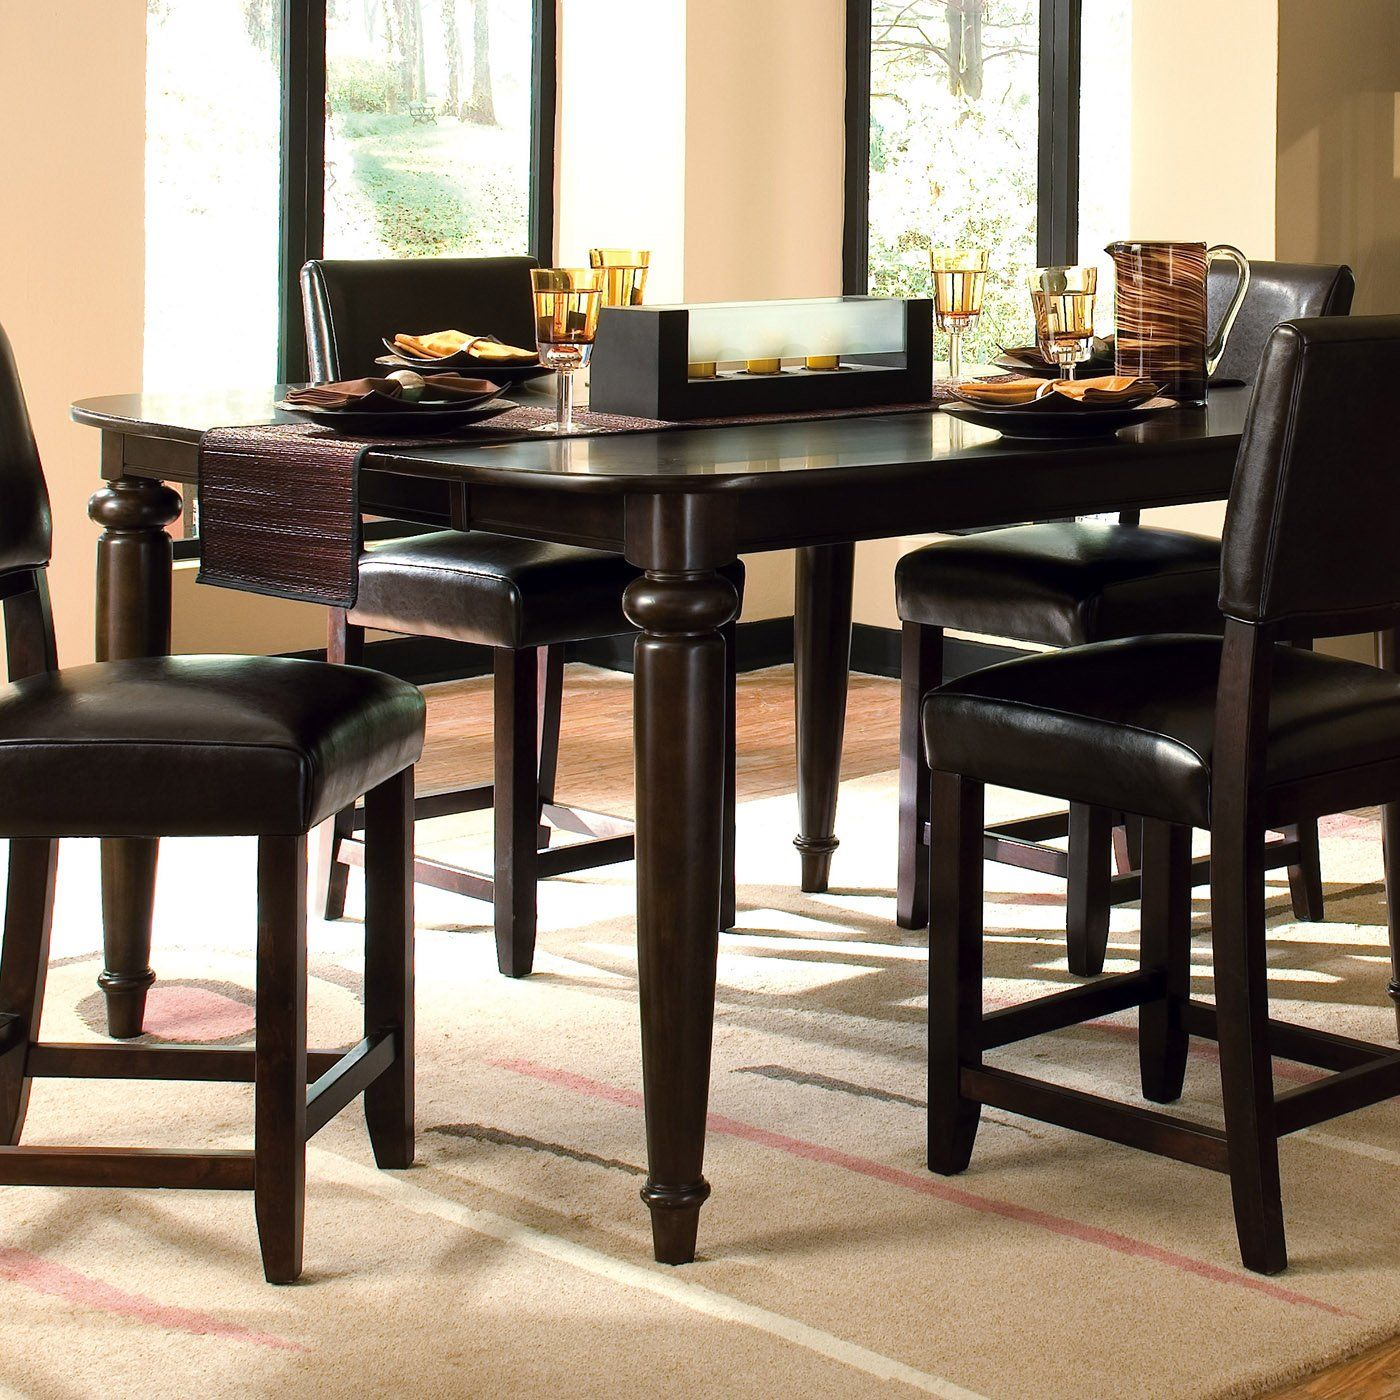 Kincaid Furniture 46 058 Somerset Tall Dining Table